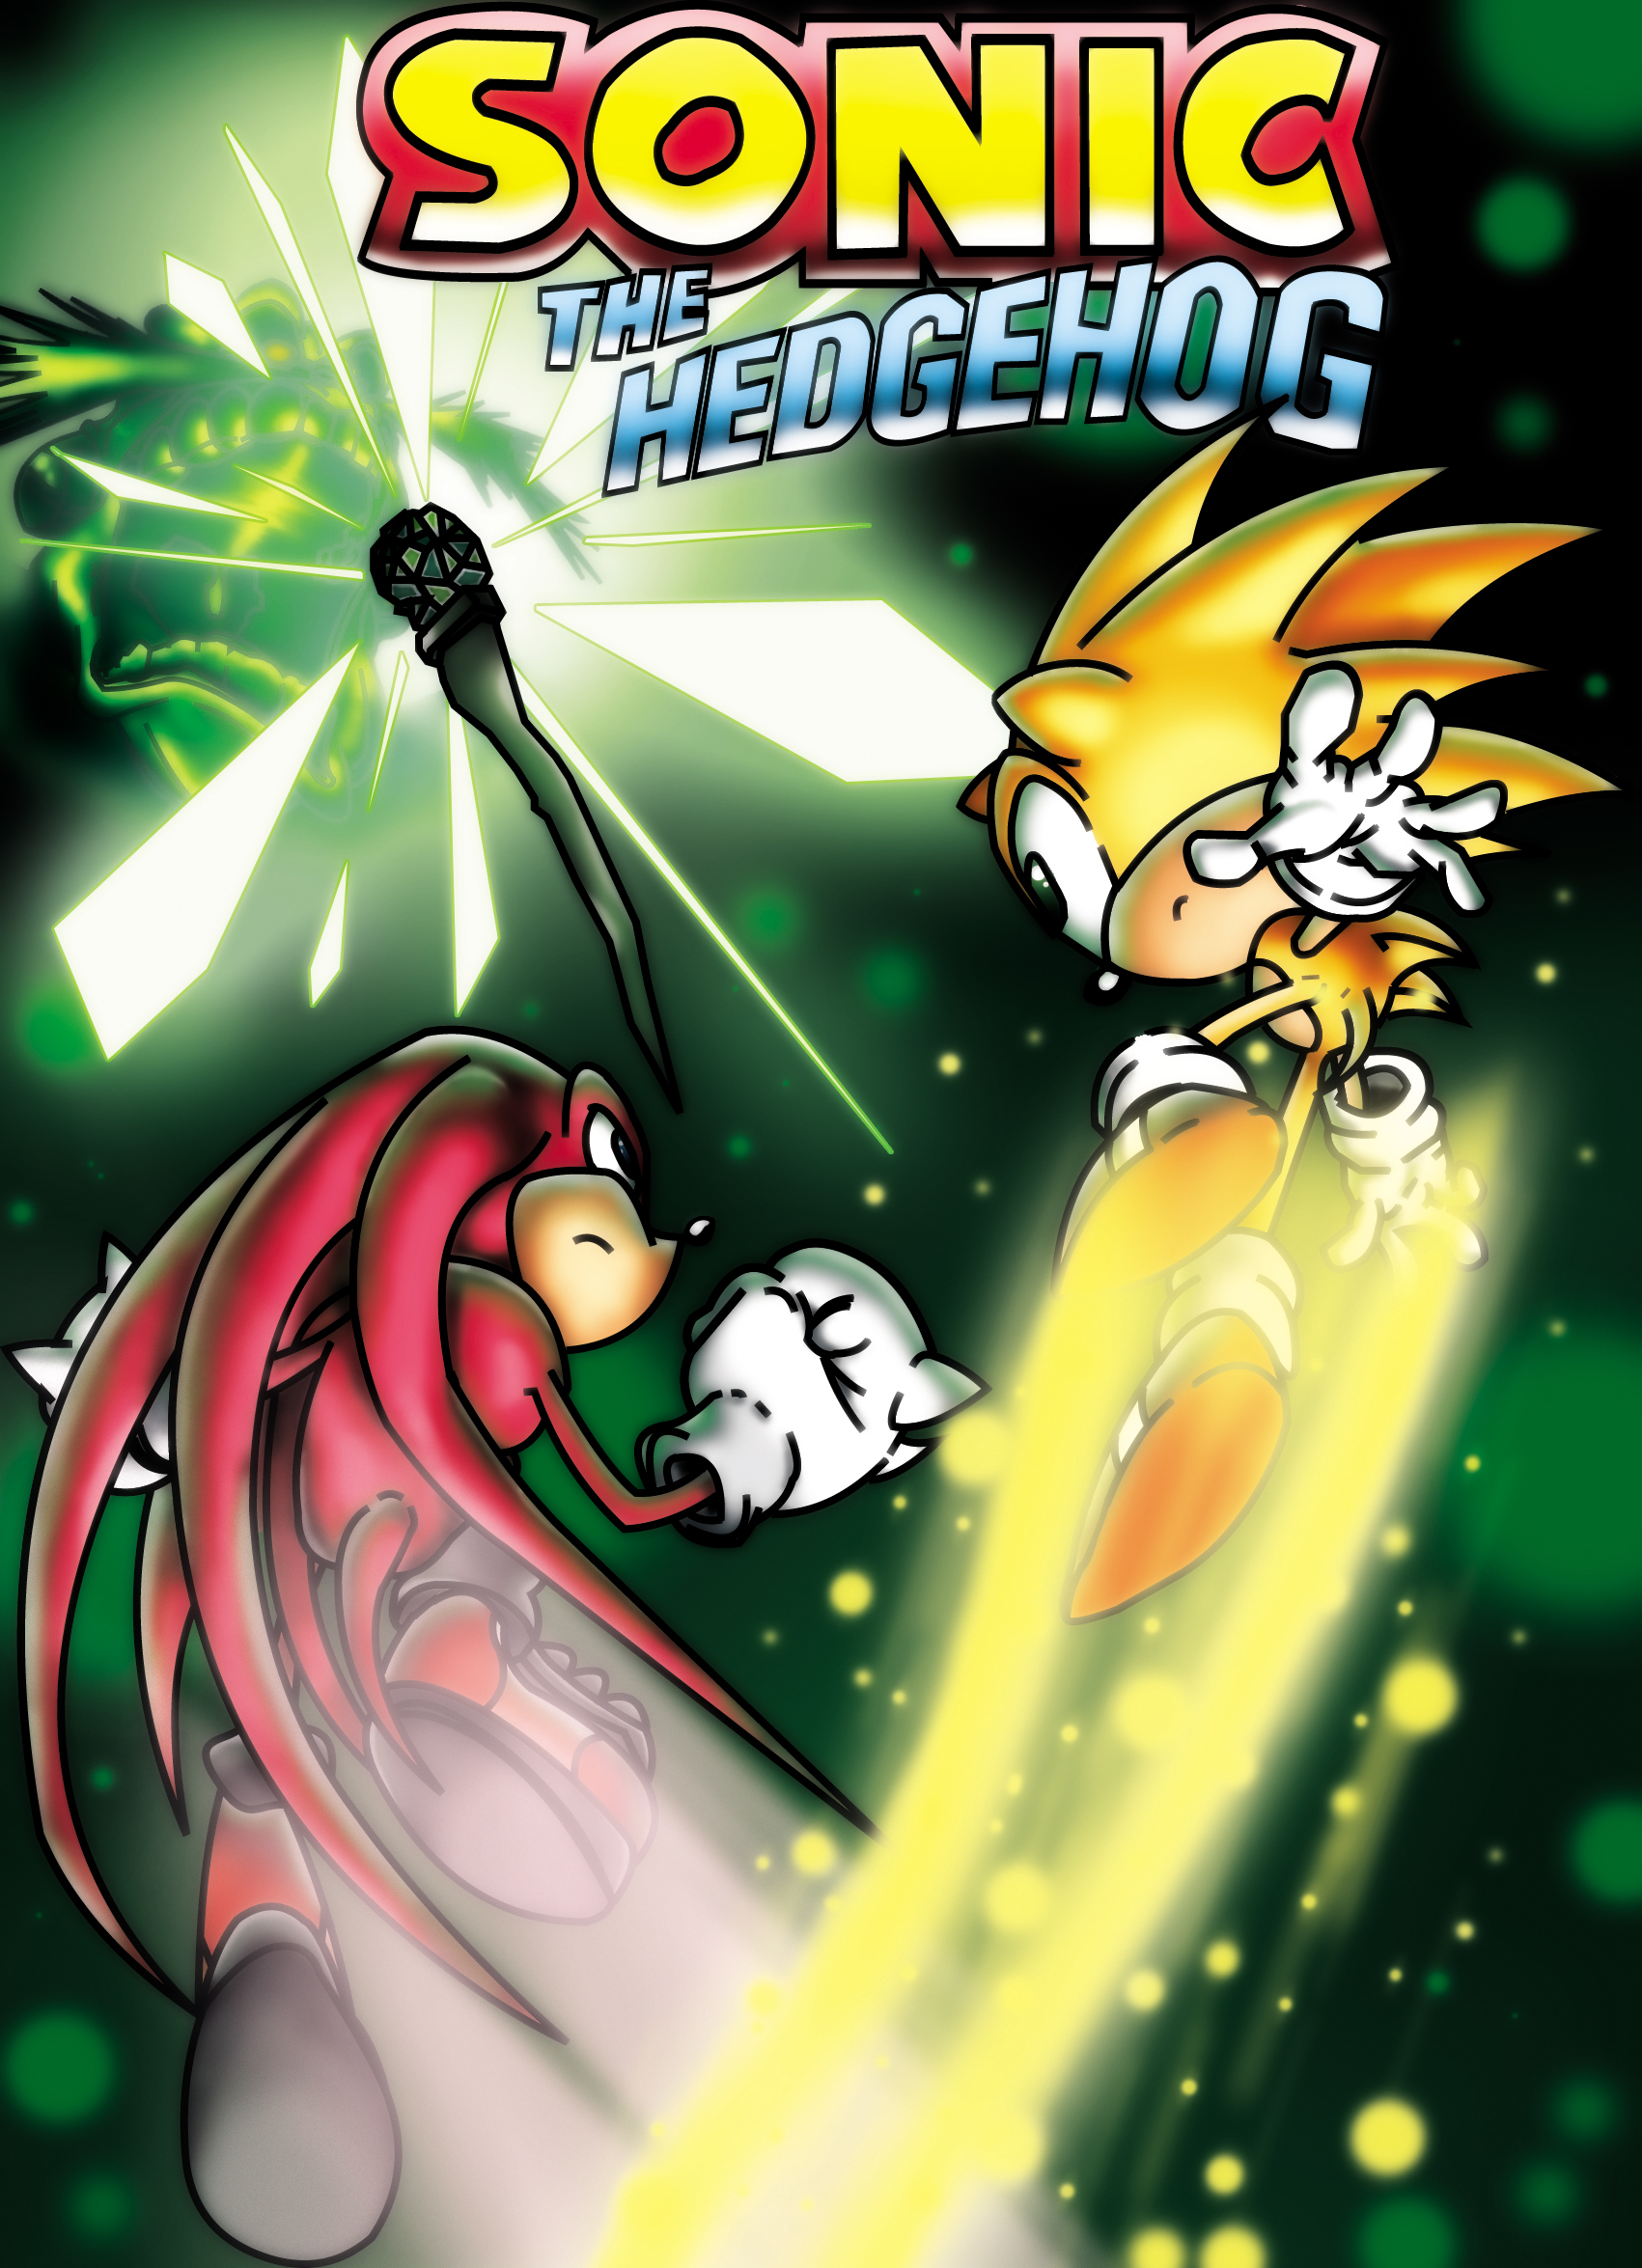 Sonic and Knuckles by PARANOiA290